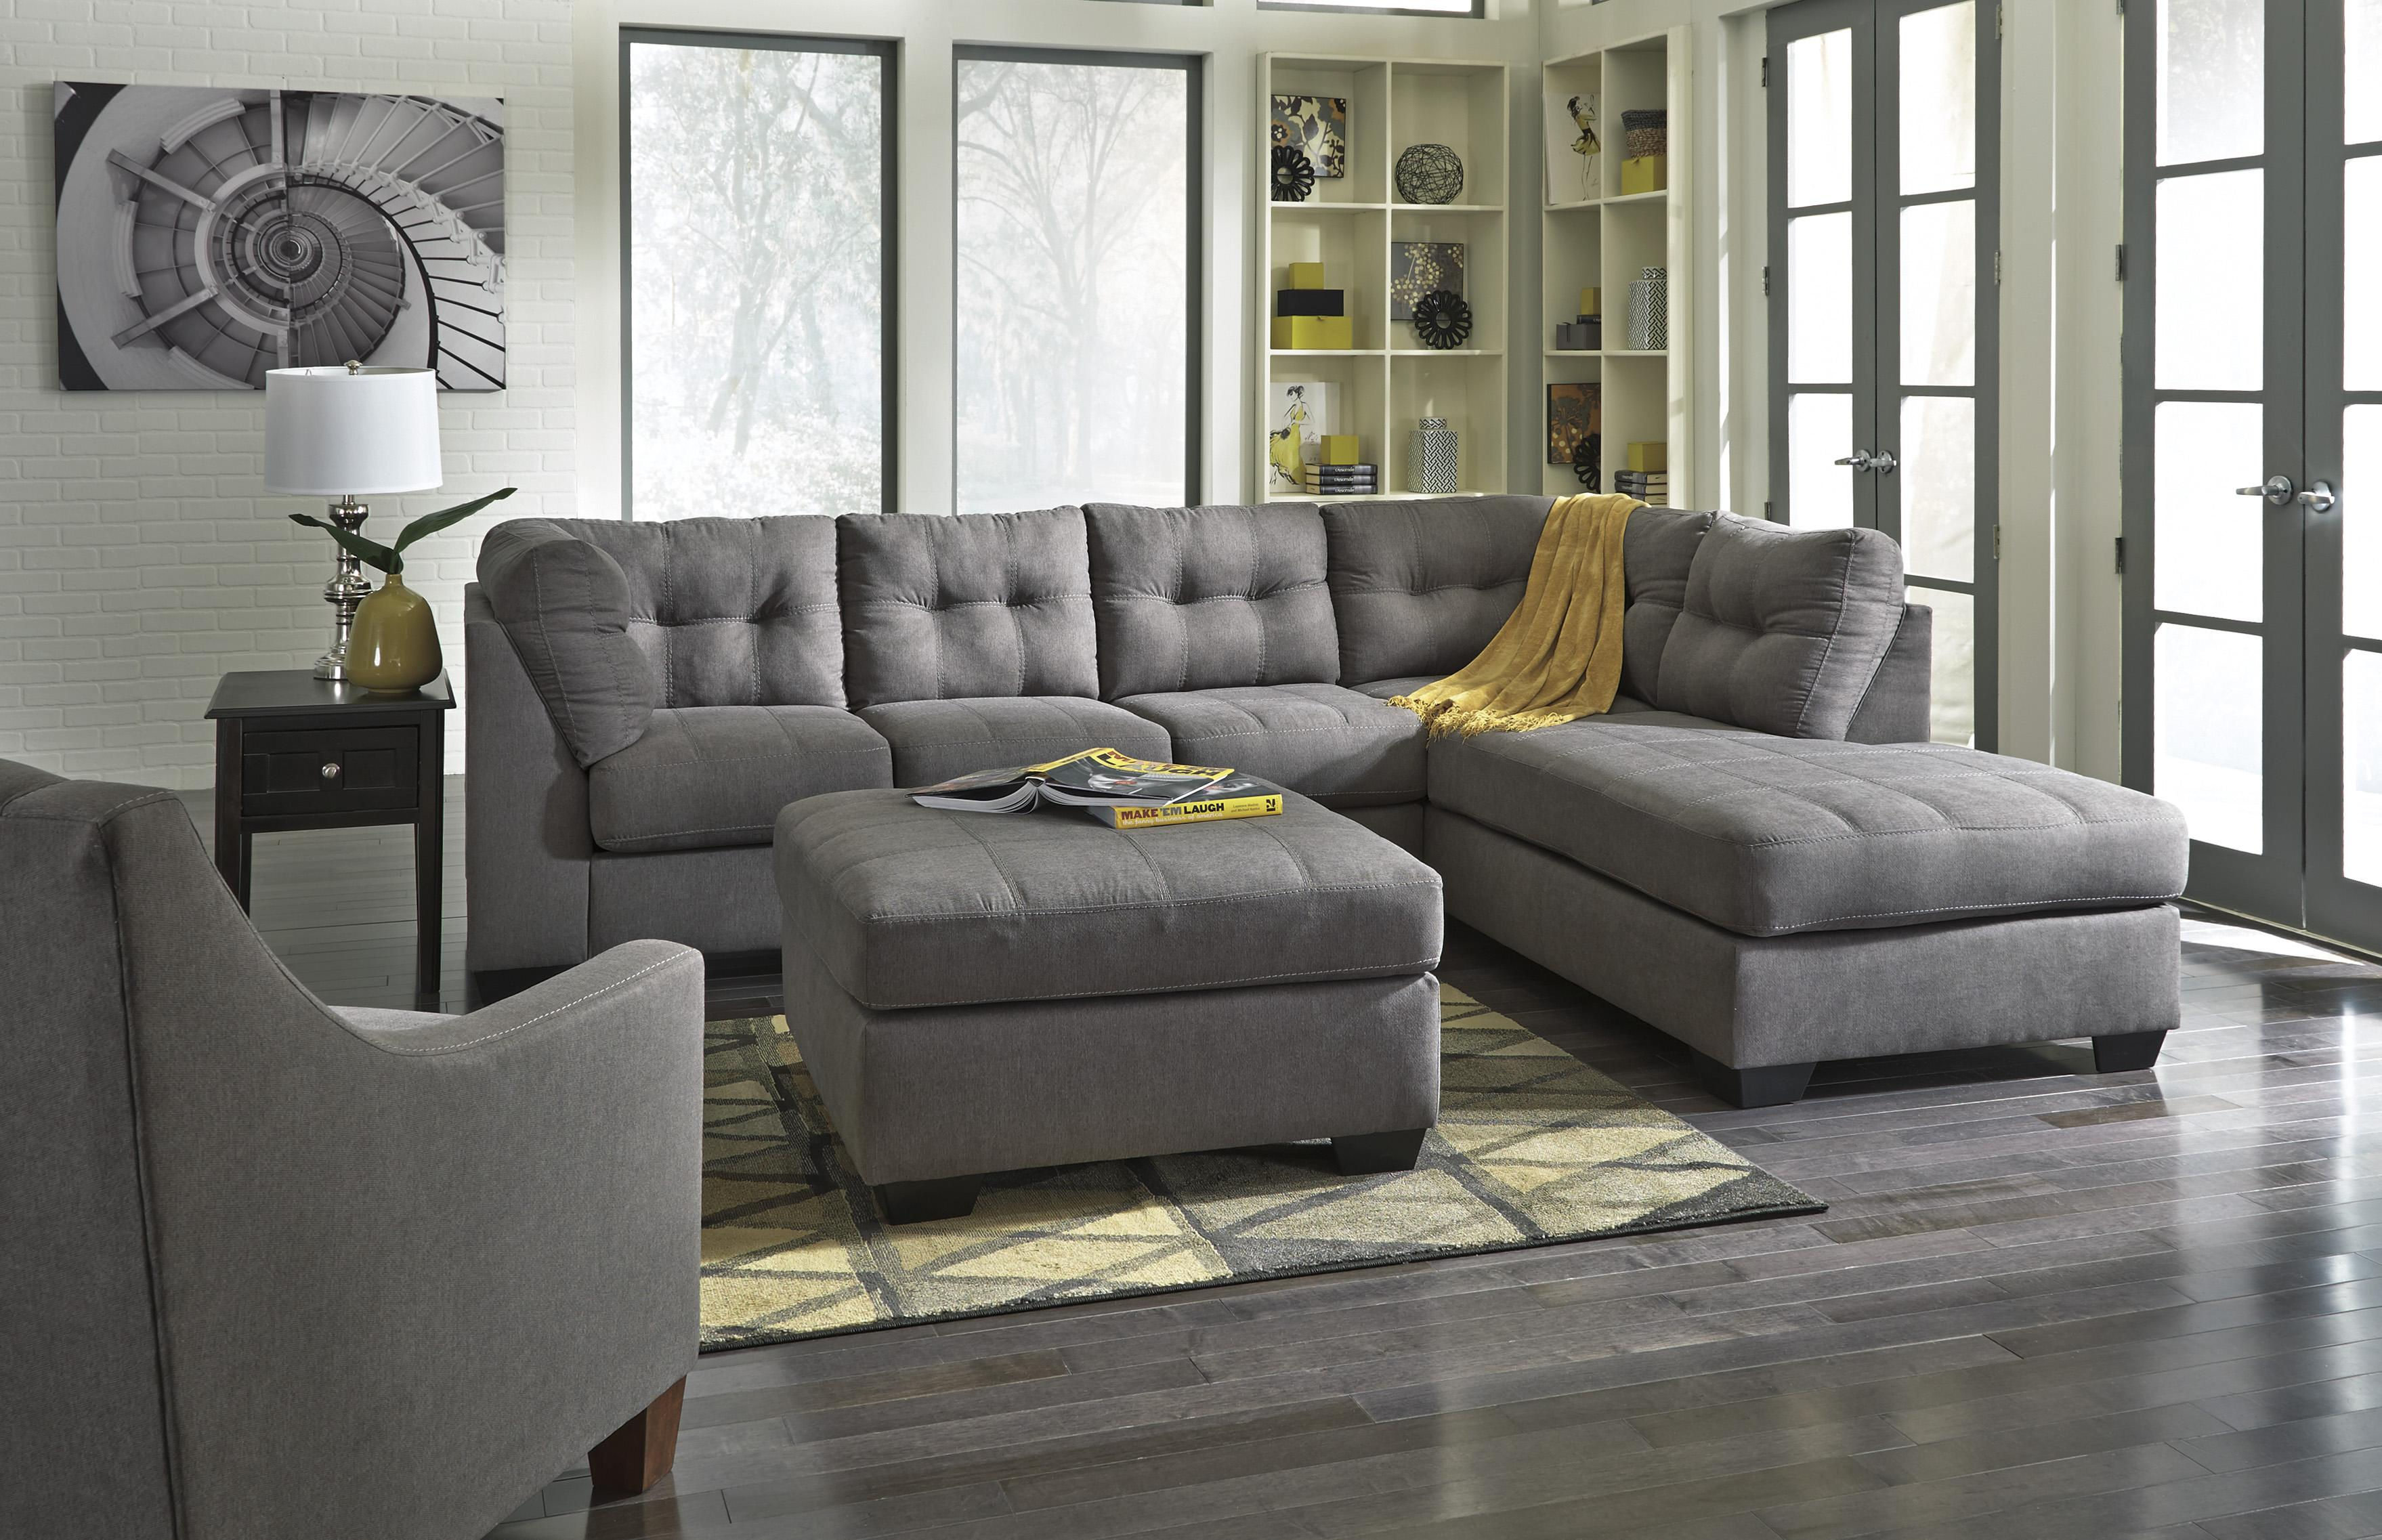 Benchcraft MaierCharcoal 2Piece Sectional with Right Chaise